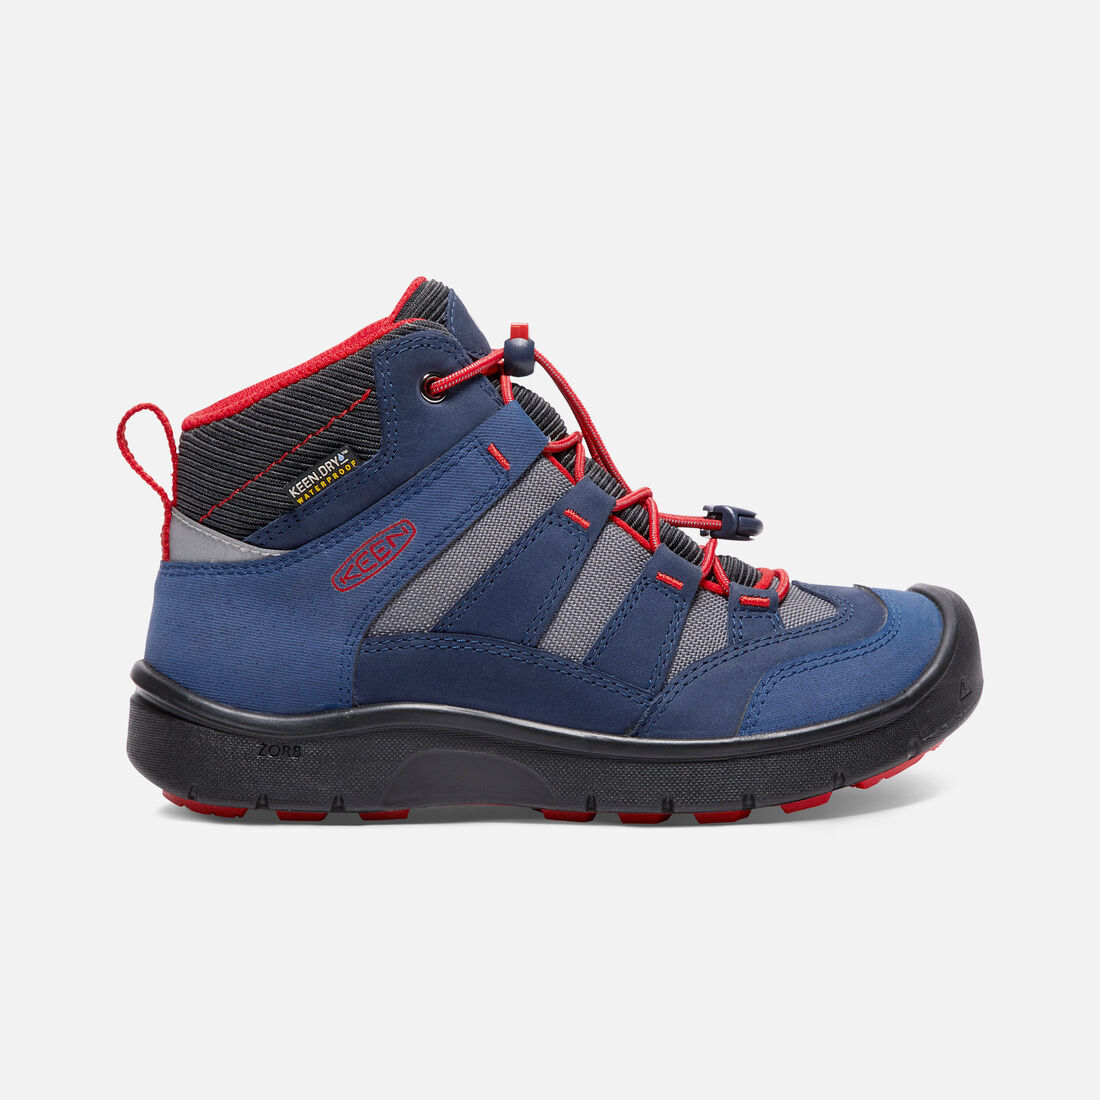 Big Kids' HIKEPORT MID Waterproof in Dress Blues/Fiery Red - large view.